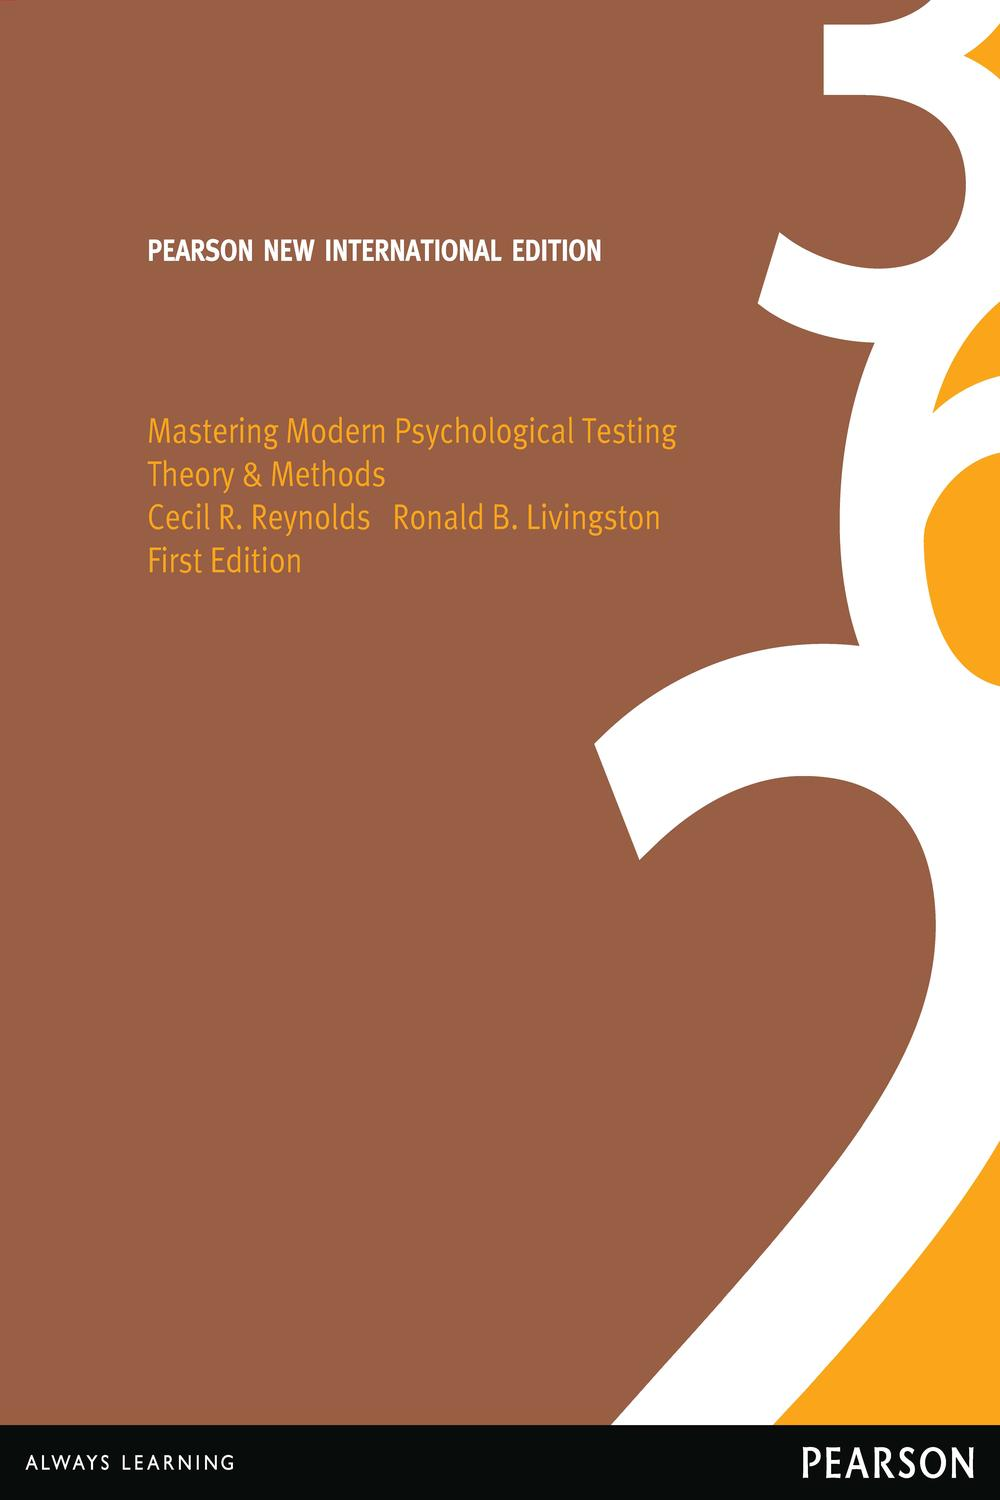 Mastering Modern Psychological Testing: Pearson New International